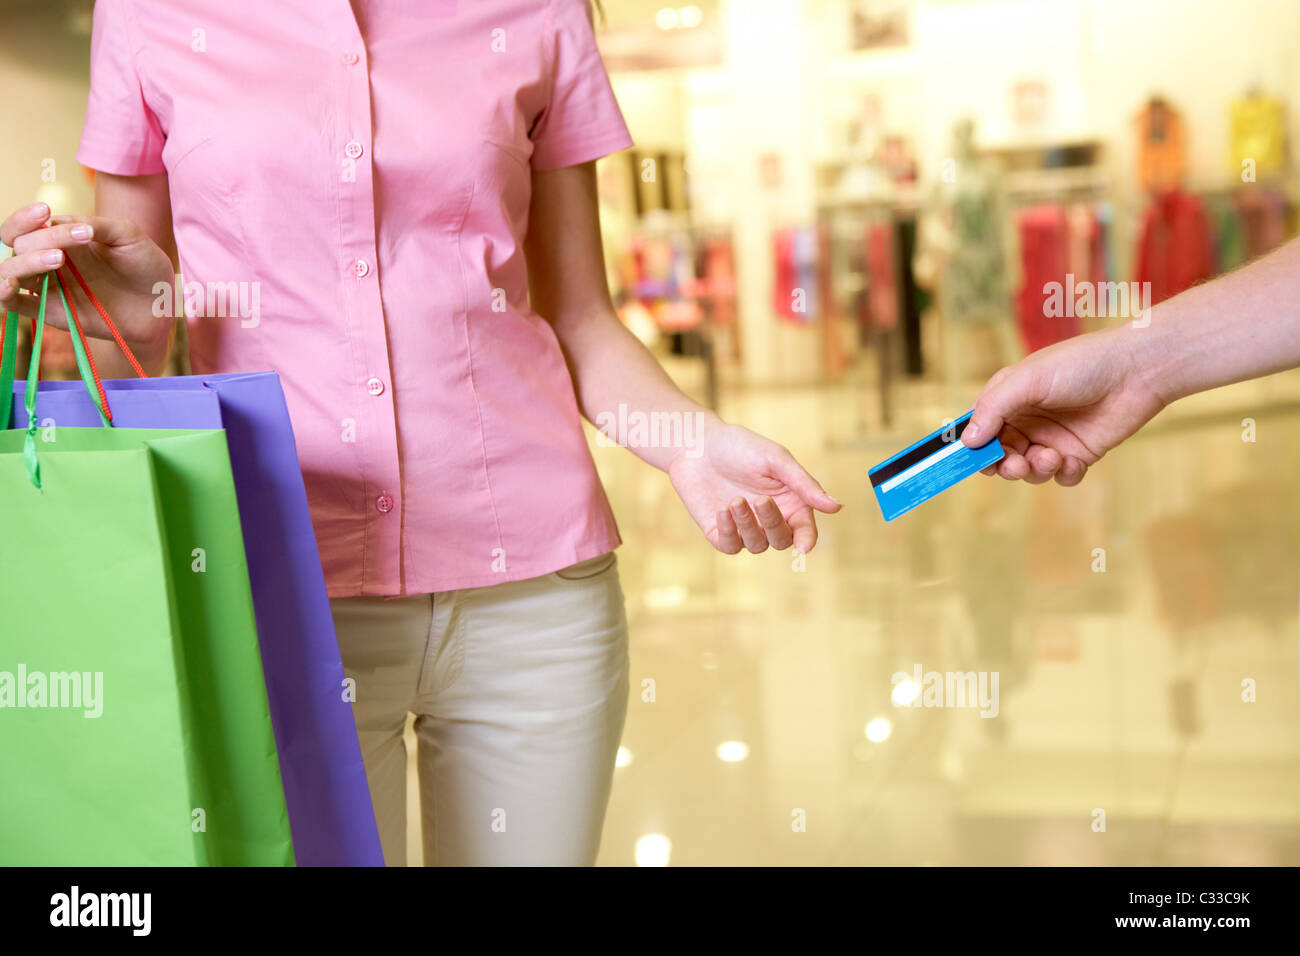 Close-up of woman taking plastic card from male hand in the mall - Stock Image